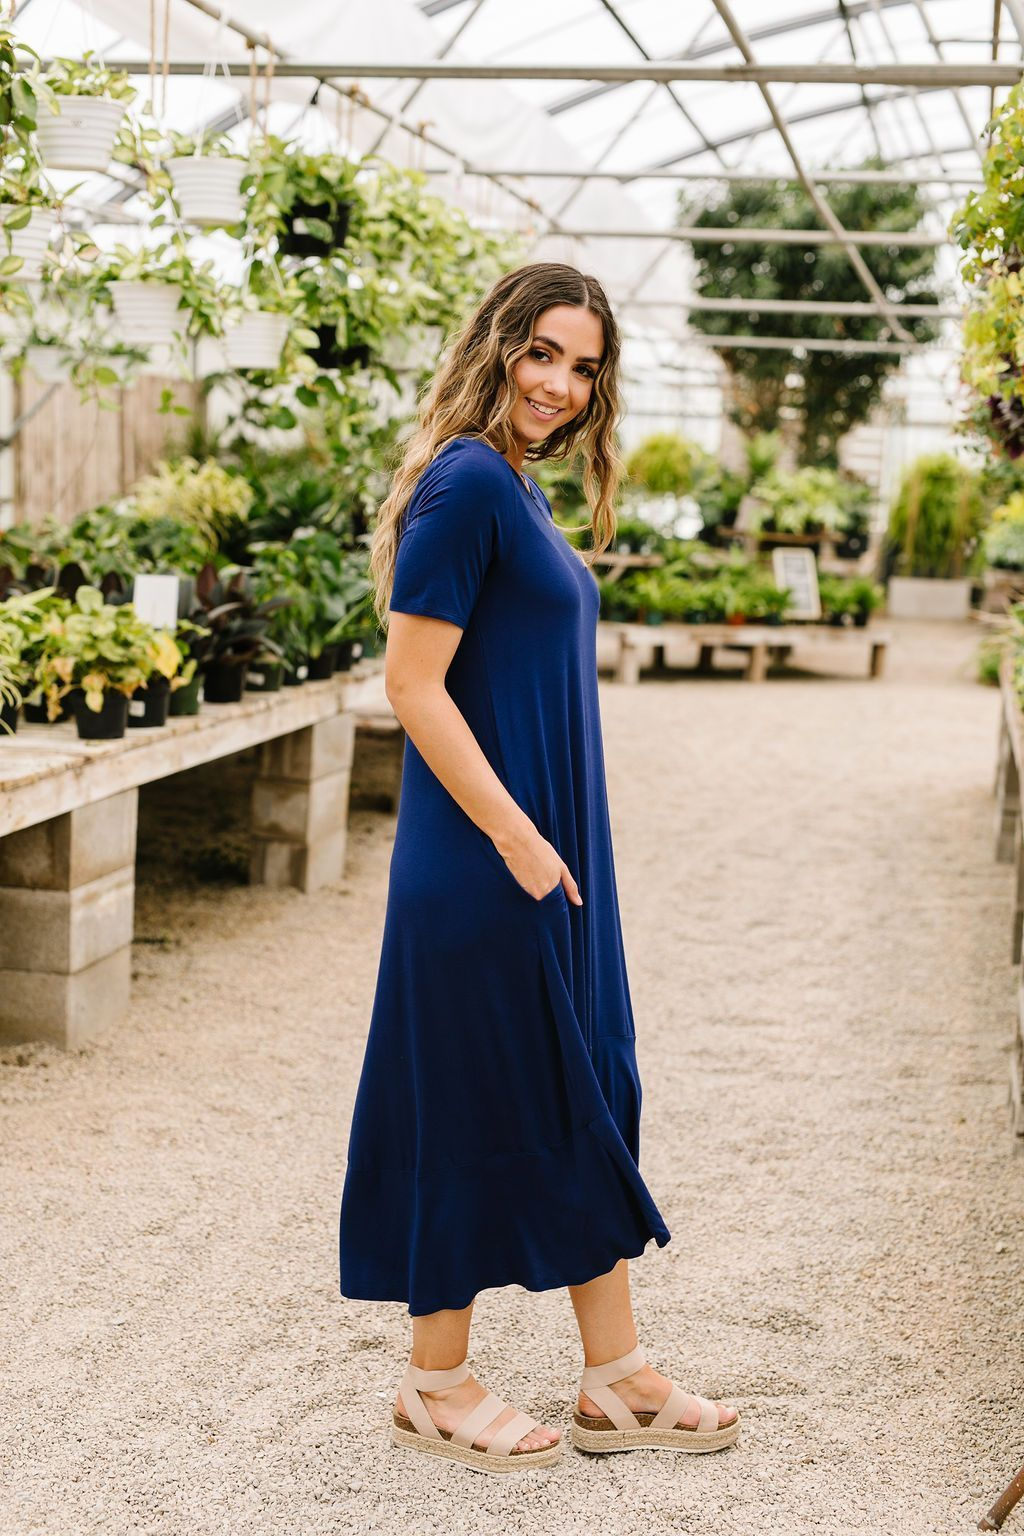 The loose flowing fit, high-low hem, and short sleeves mean this maxi dress is sure to be a summer hit! The rich navy color is a summertime classic. Add a cardigan or jacket and it will take you through the fall. LightweightStretchy Through MaterialSlightly SheerPocketsHigh-Low Hem 92% Rayon 8% Spandex Fits True To SizeMade In USA*Measurements listed below are of the actual clothing item* Small: Chest 36